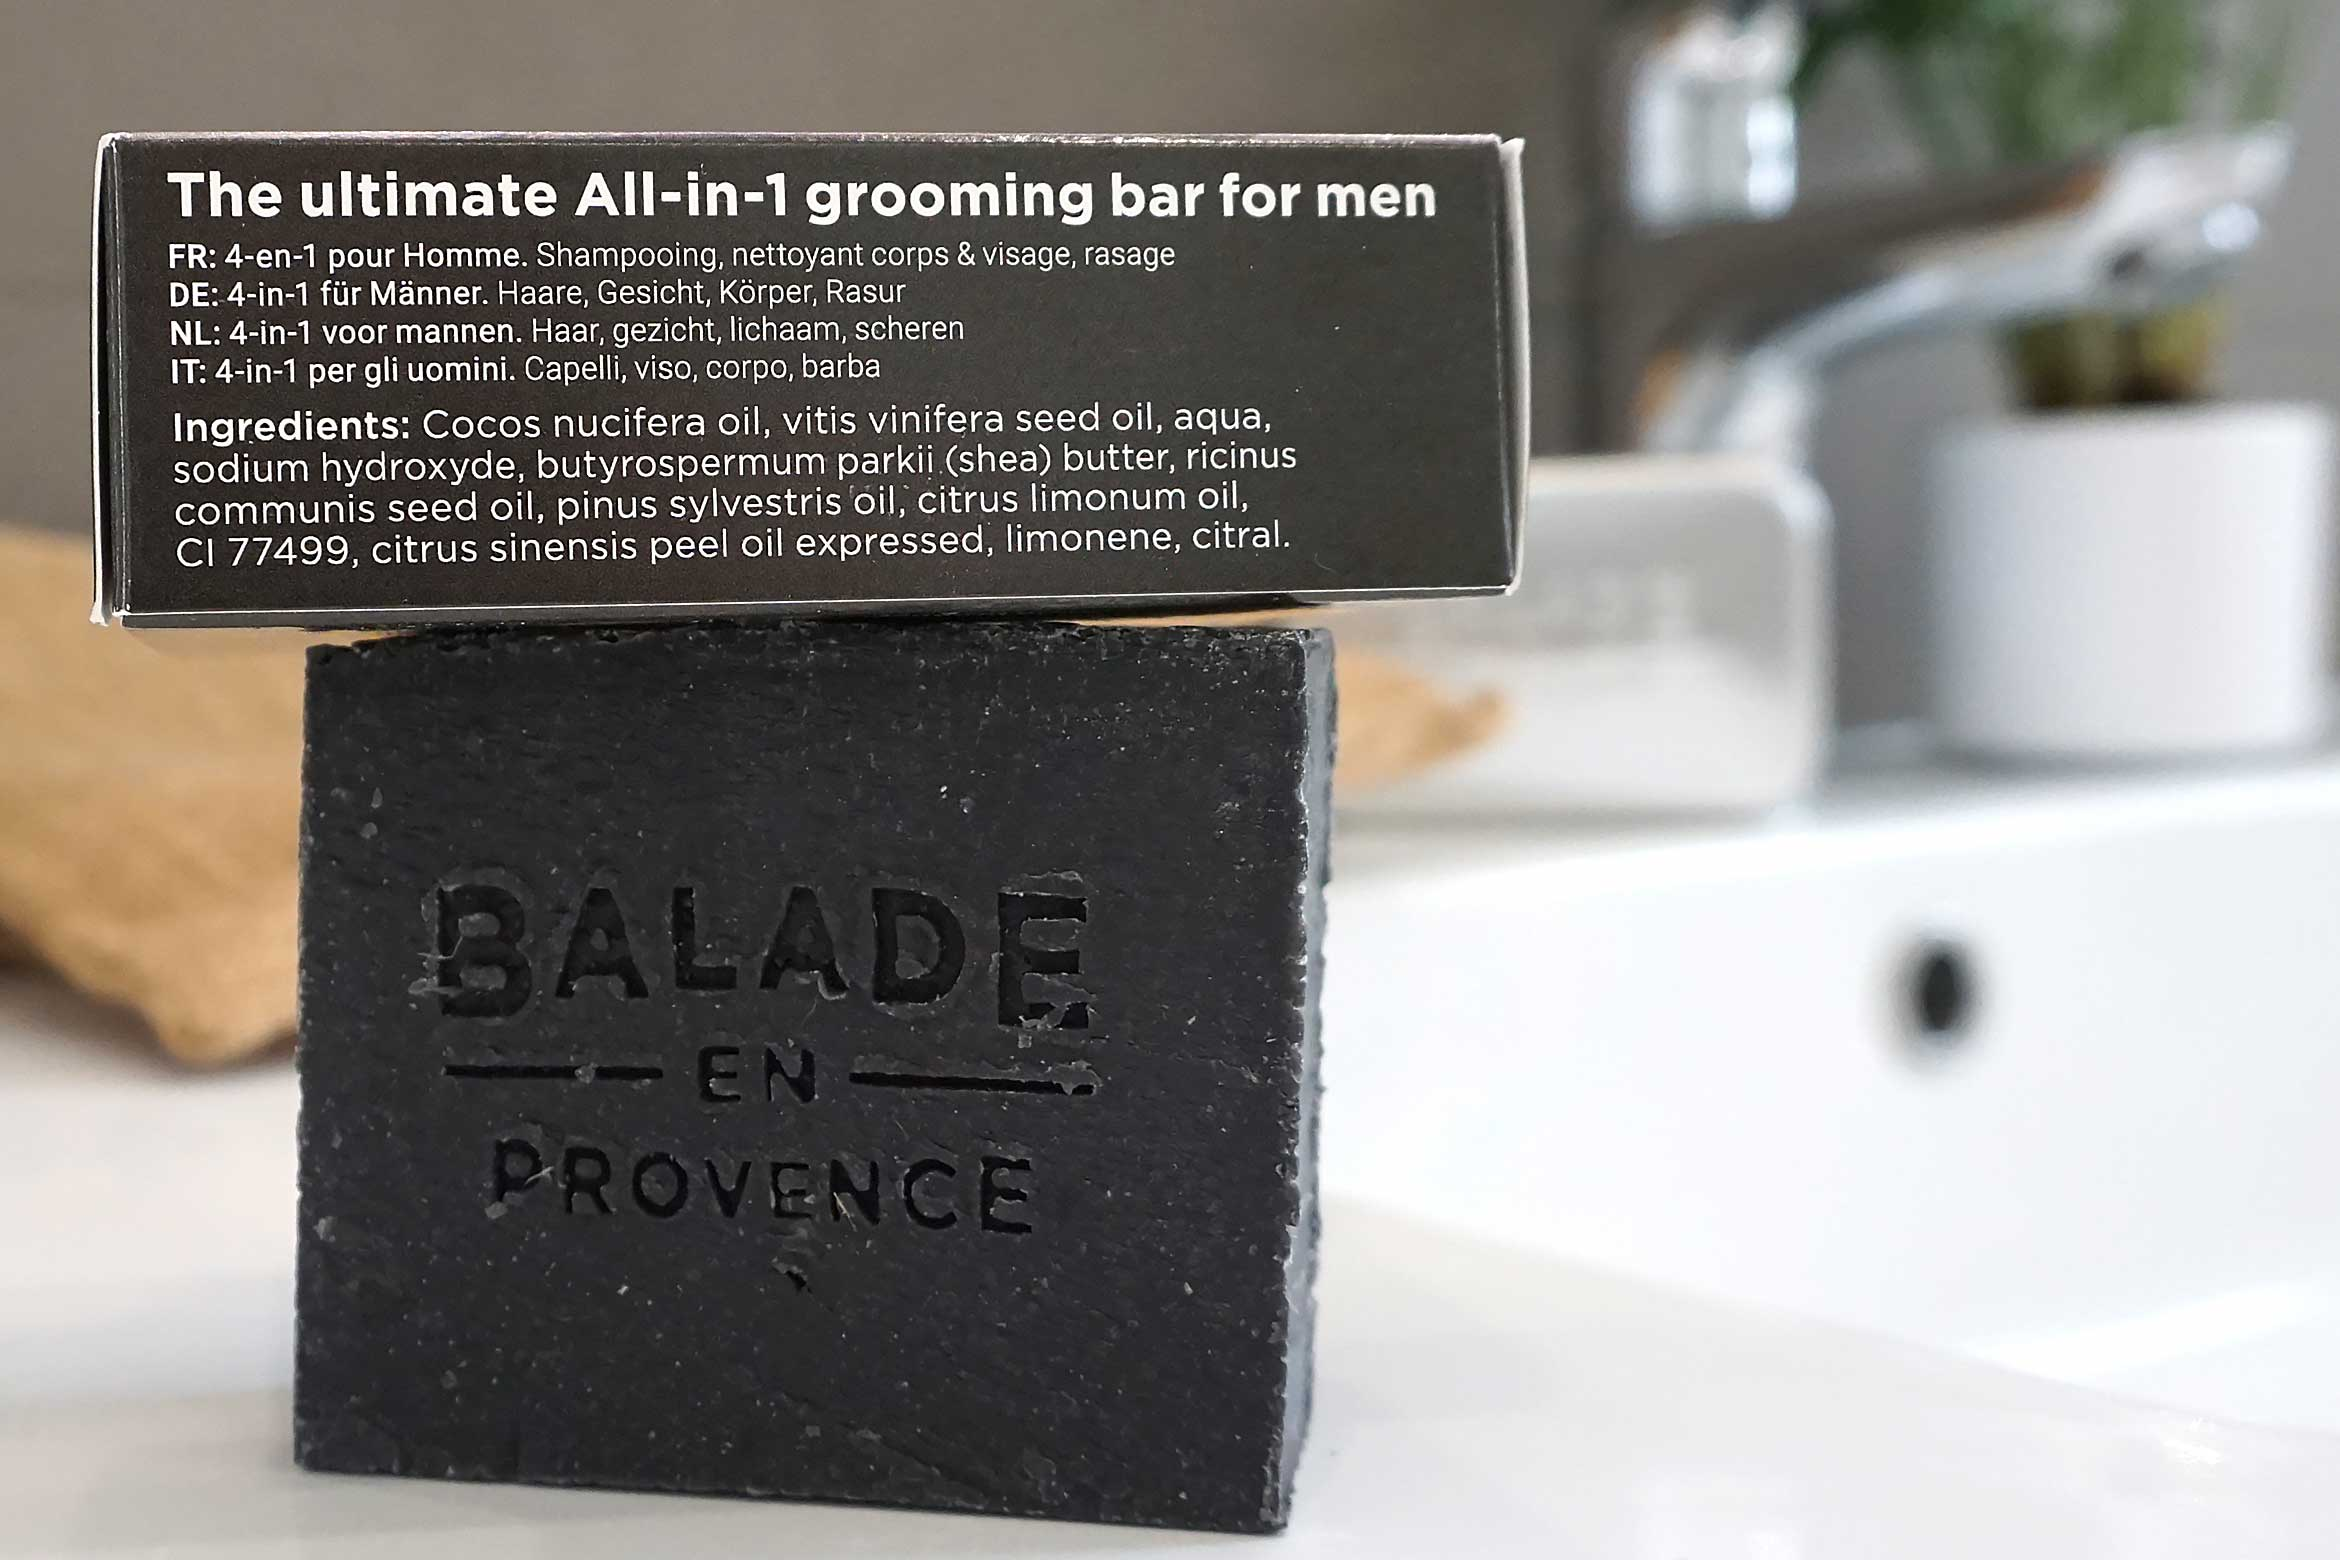 balade en provence all in 1 pour homme review